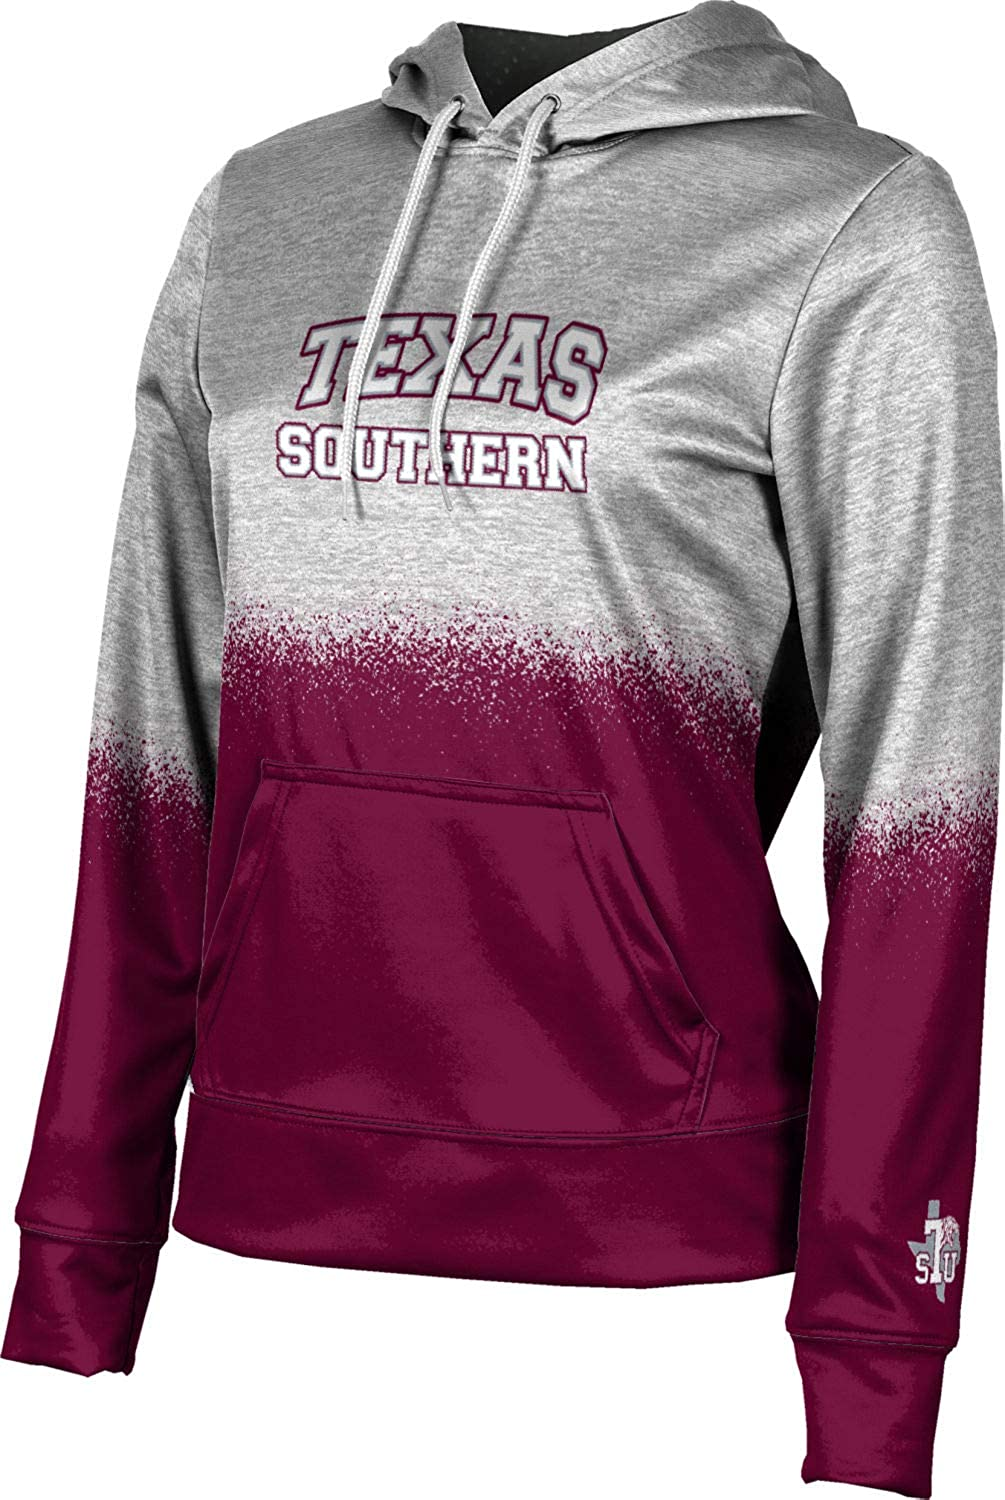 ProSphere Texas Southern University Max 72% OFF Boston Mall Scho Pullover Girls' Hoodie